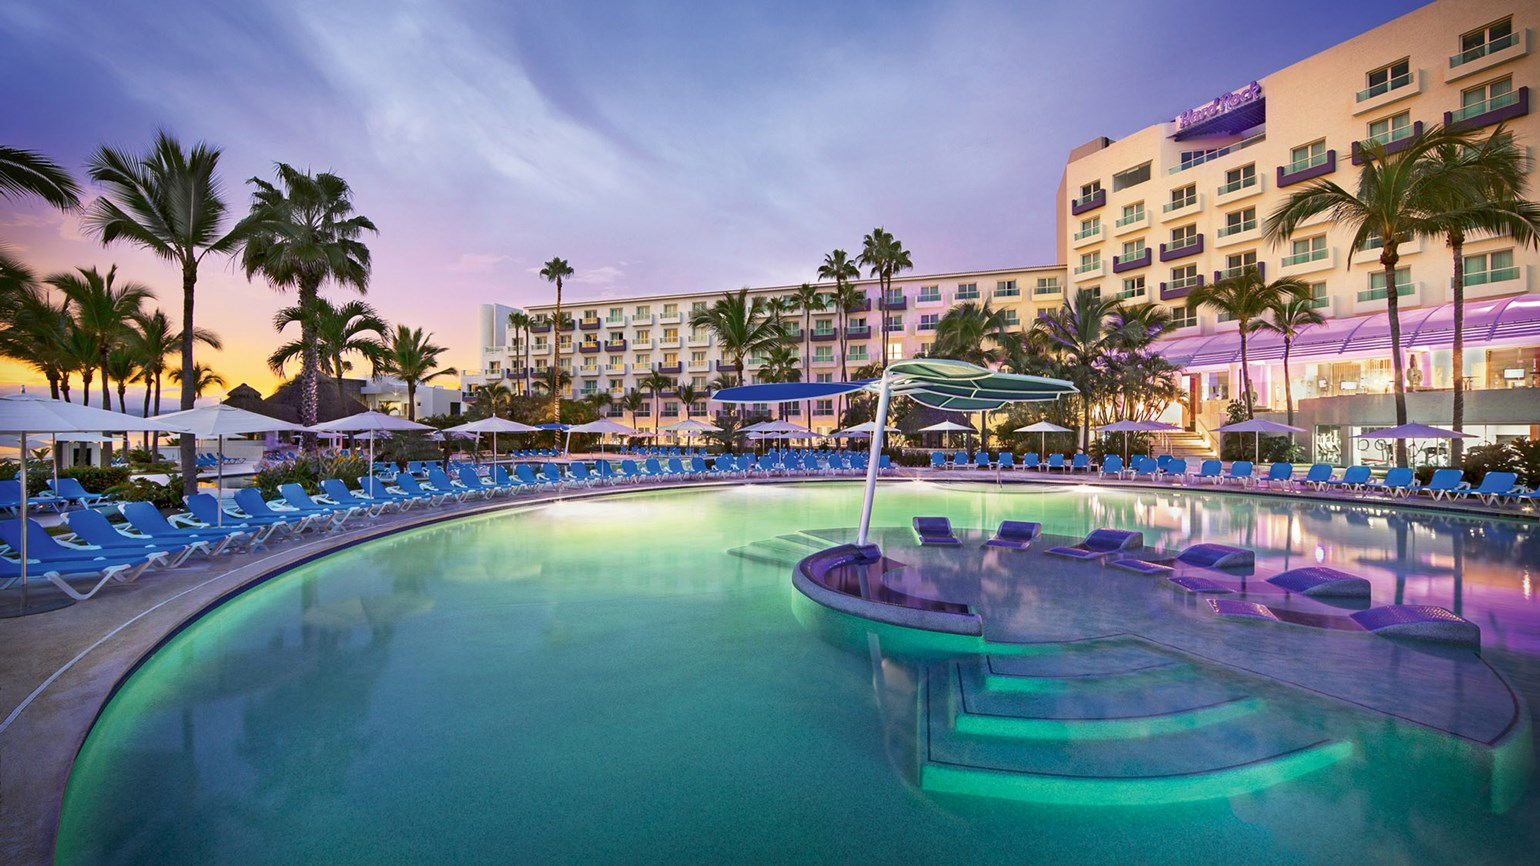 A mellower Mexico mood at the Hard Rock Hotel Vallarta